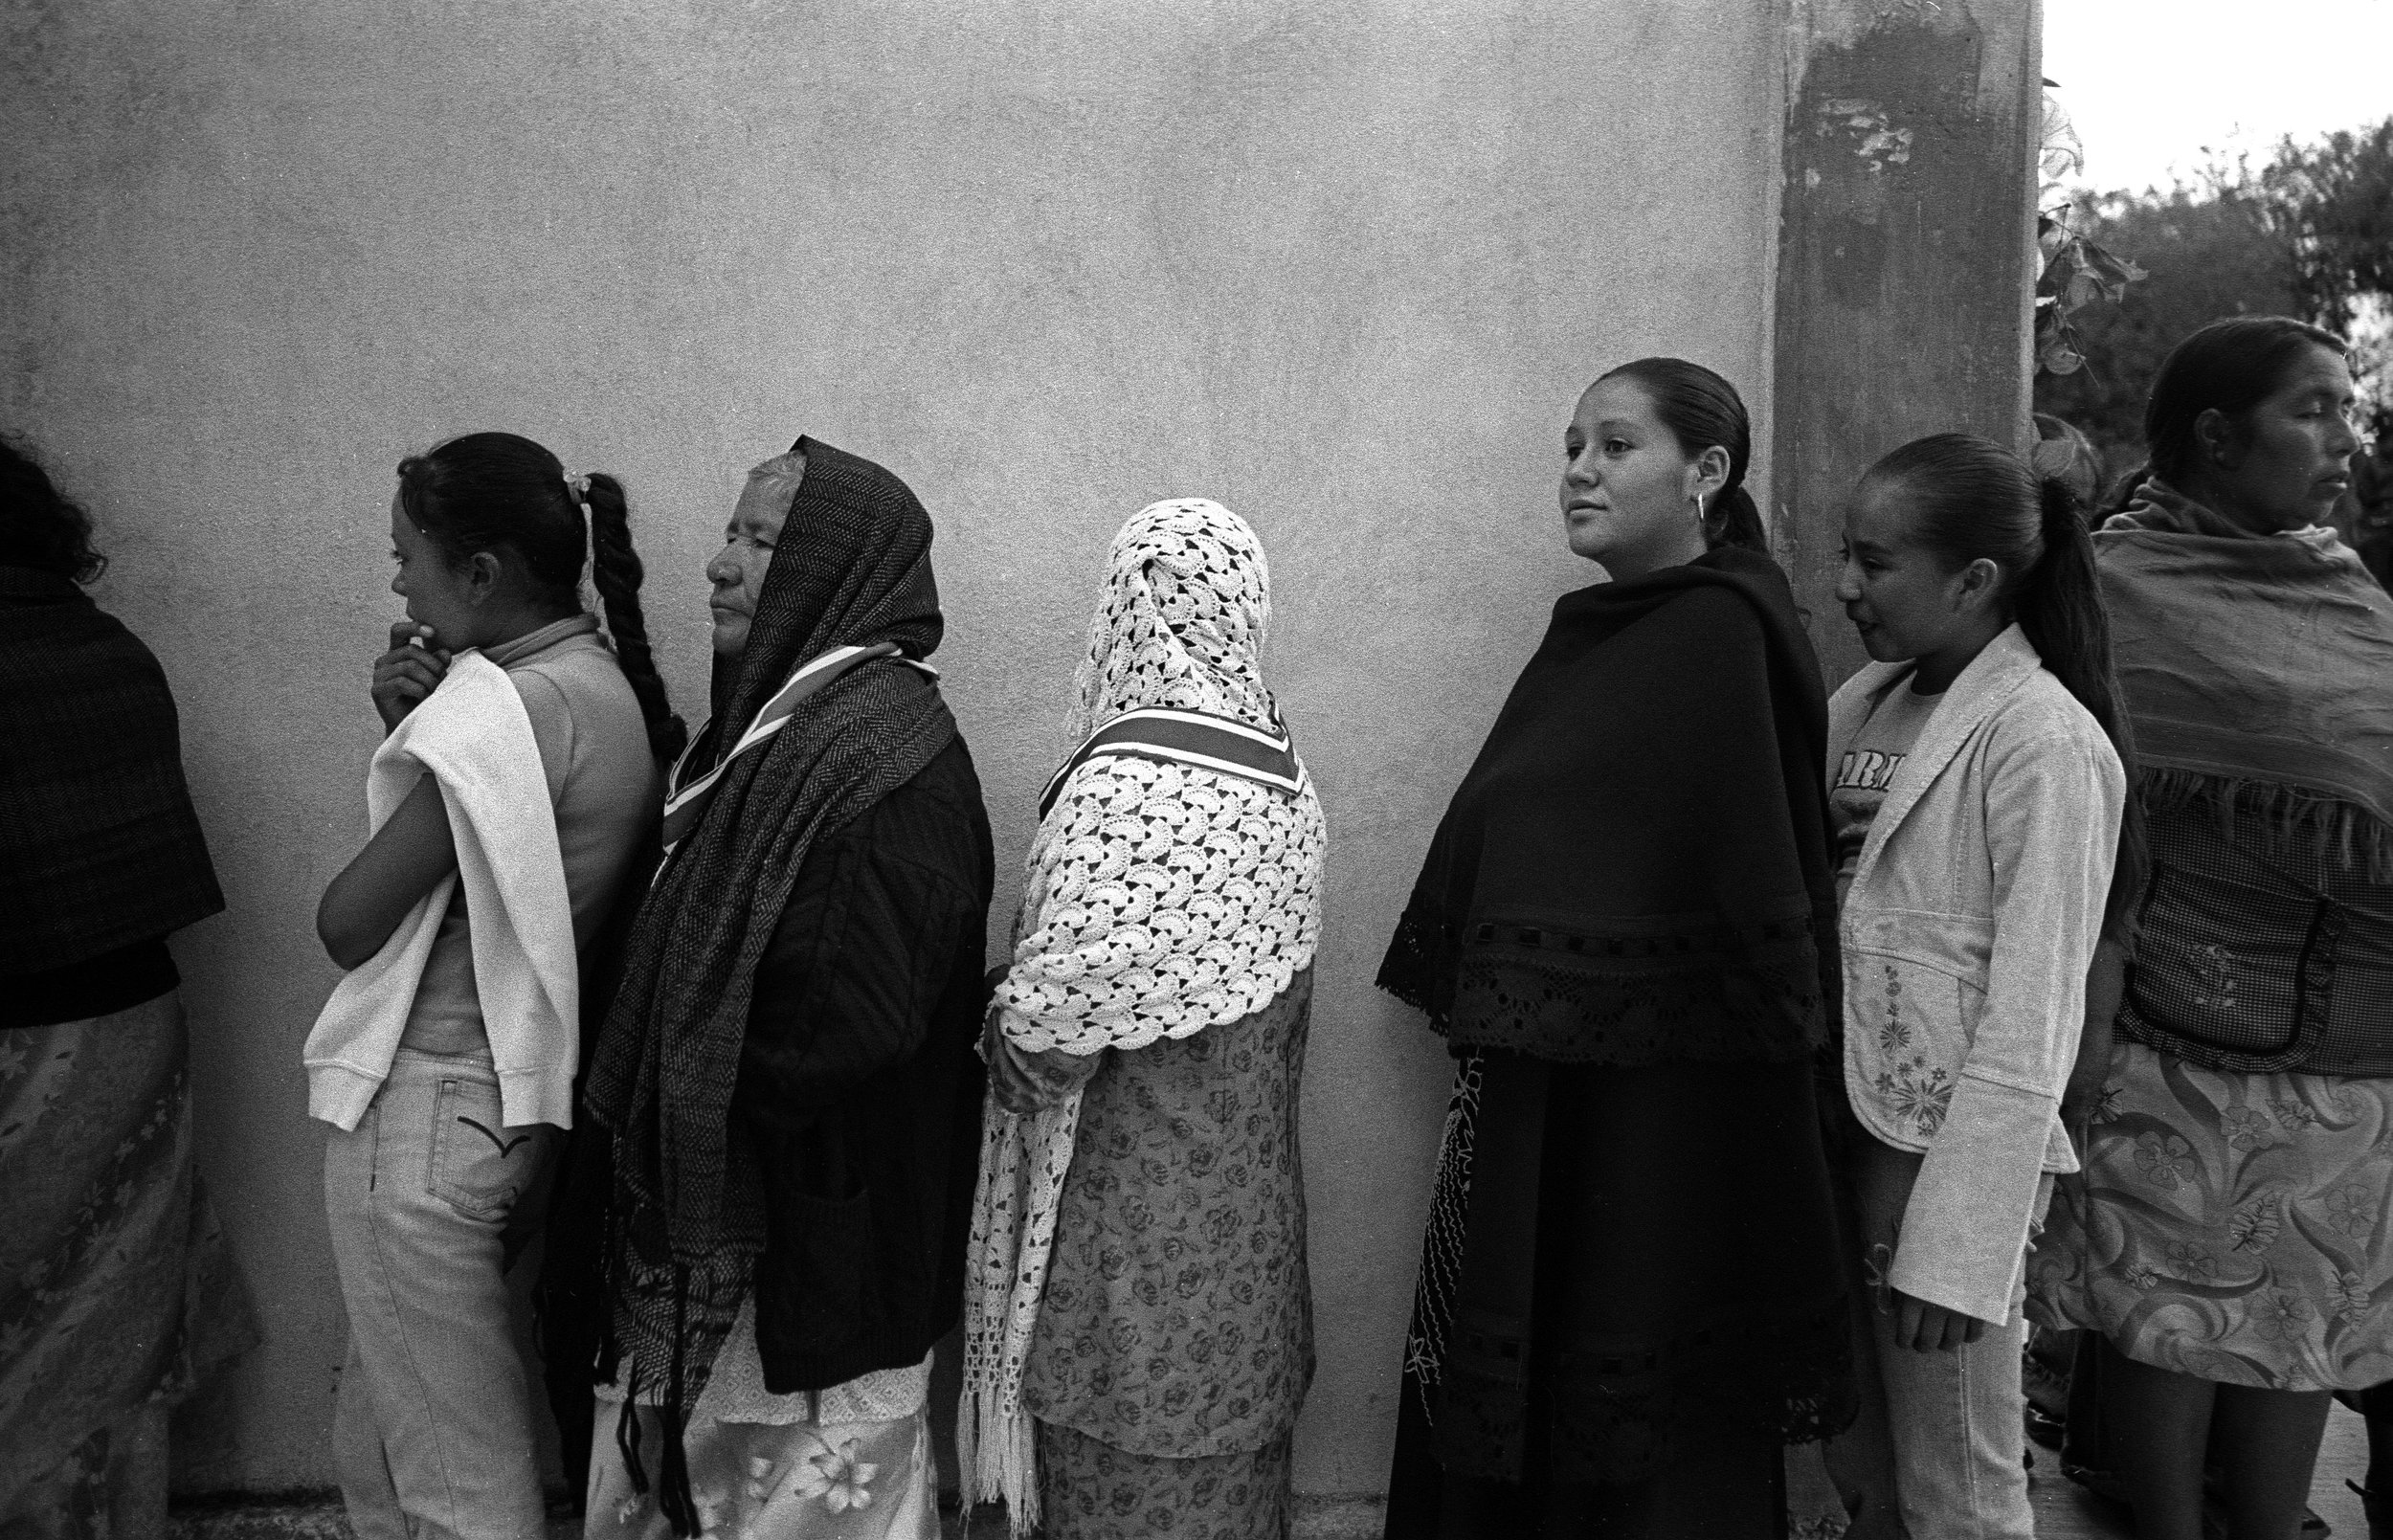 Residents of El Gusano wait in line at the village church to take communion on their saint day.